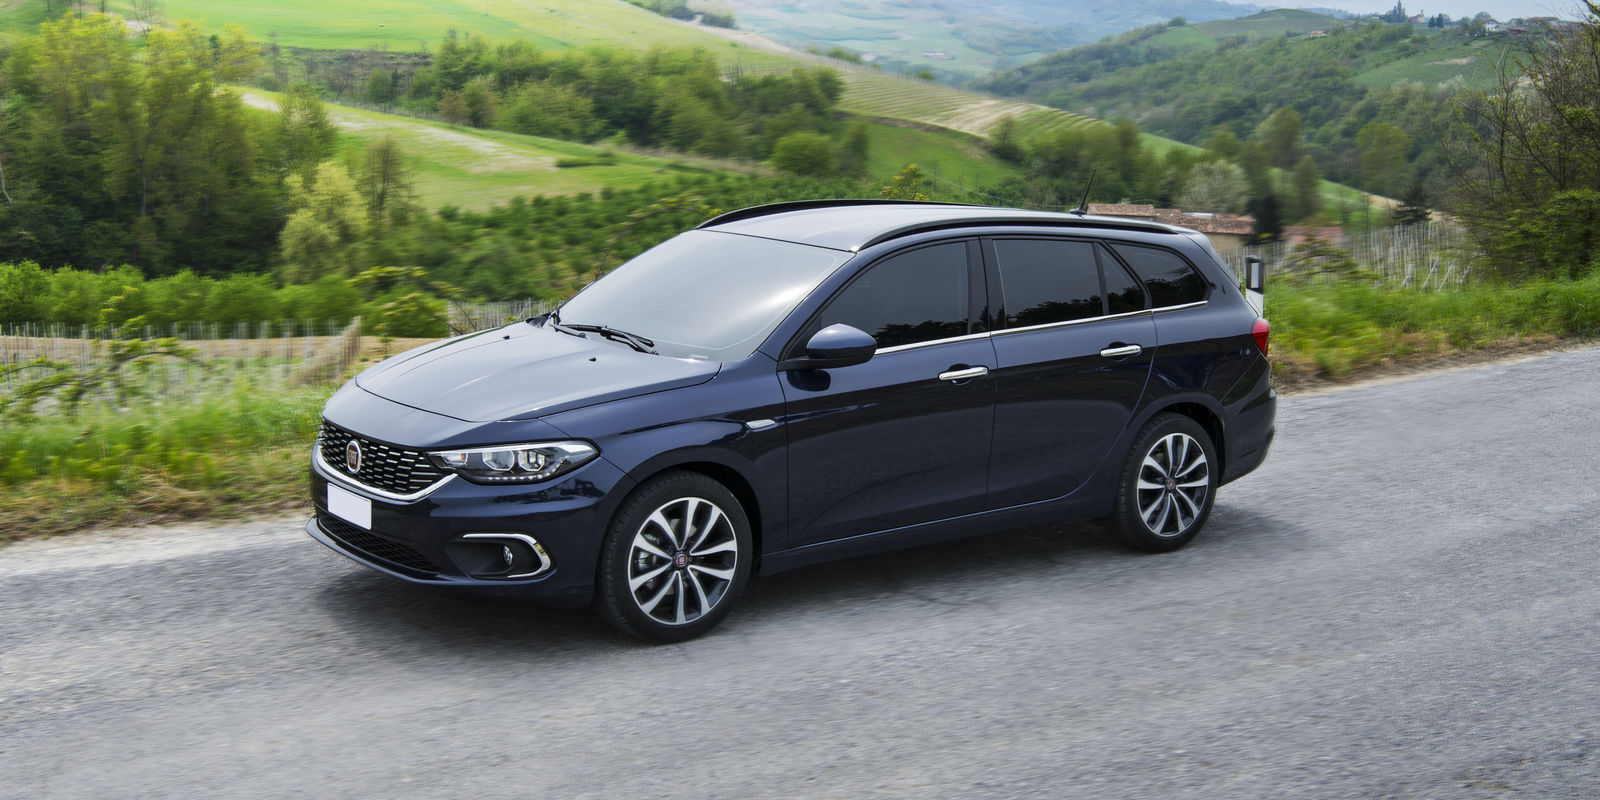 fiat tipo station wagon review carwow. Black Bedroom Furniture Sets. Home Design Ideas